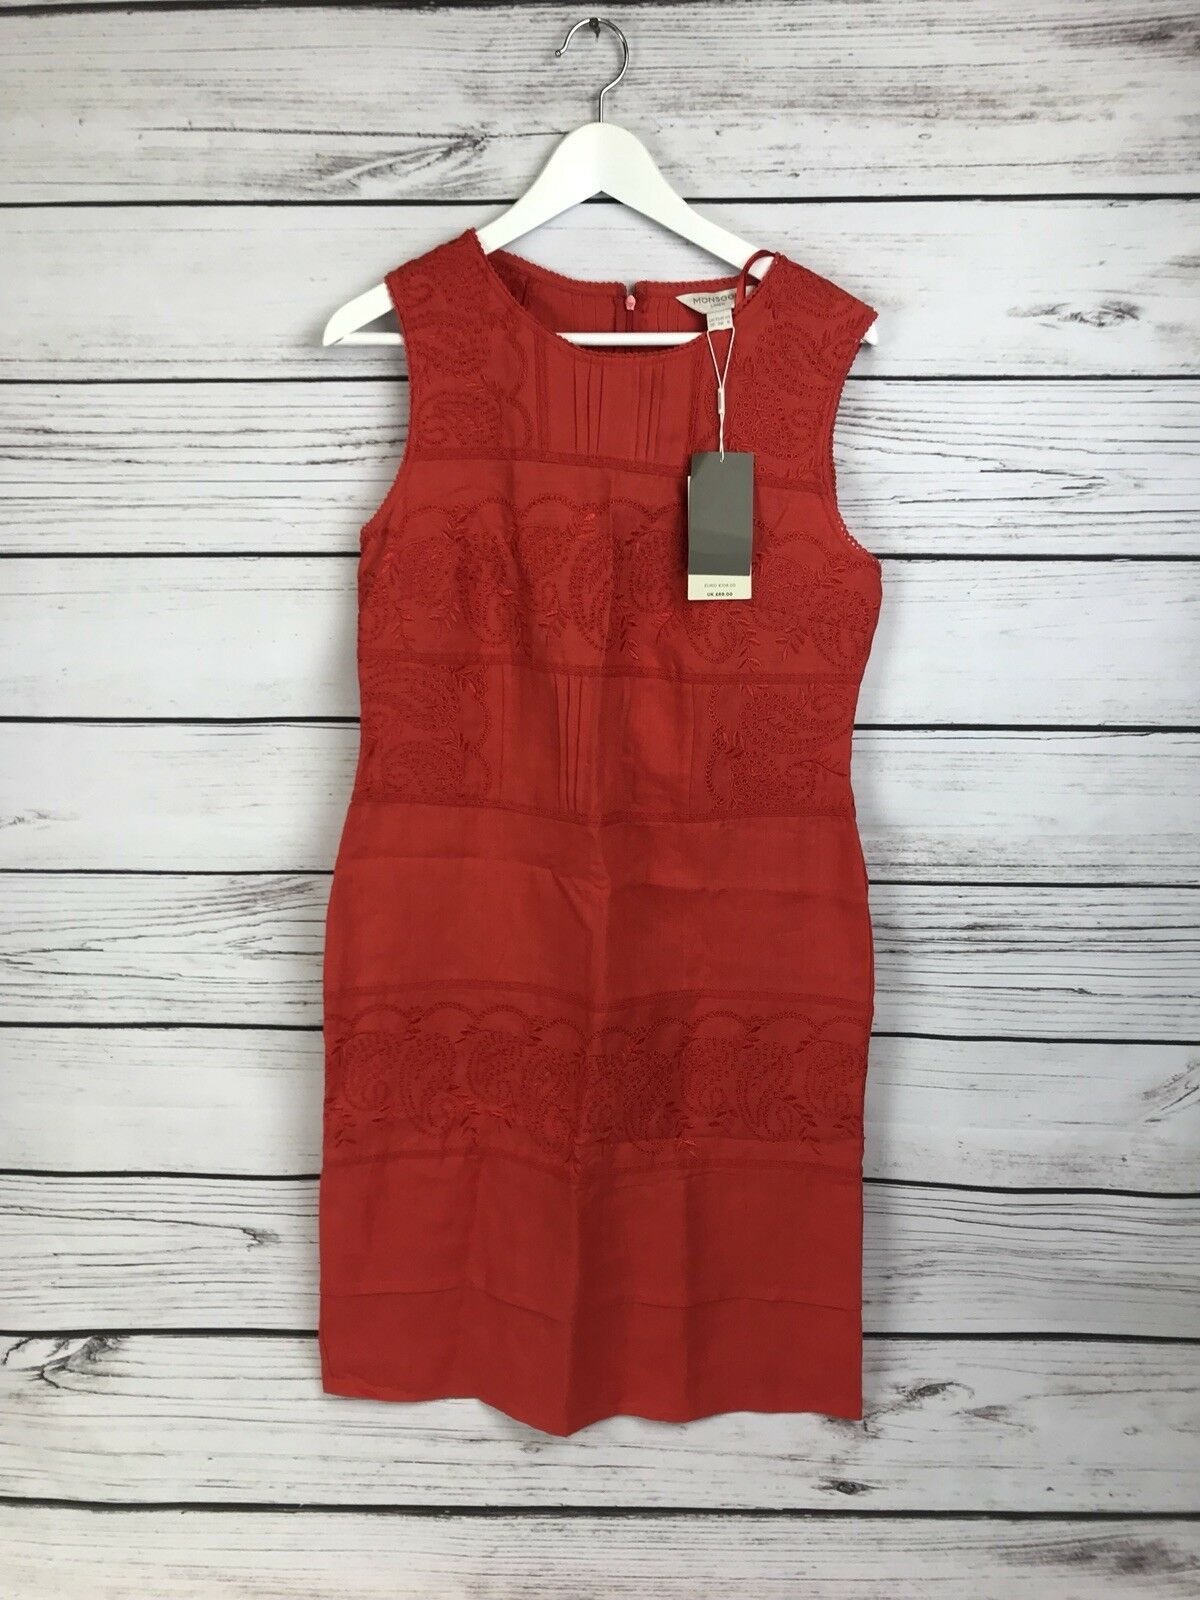 Monsoon Coral linen dress - size 10 (RRP  ) - wedding, holiday - A44